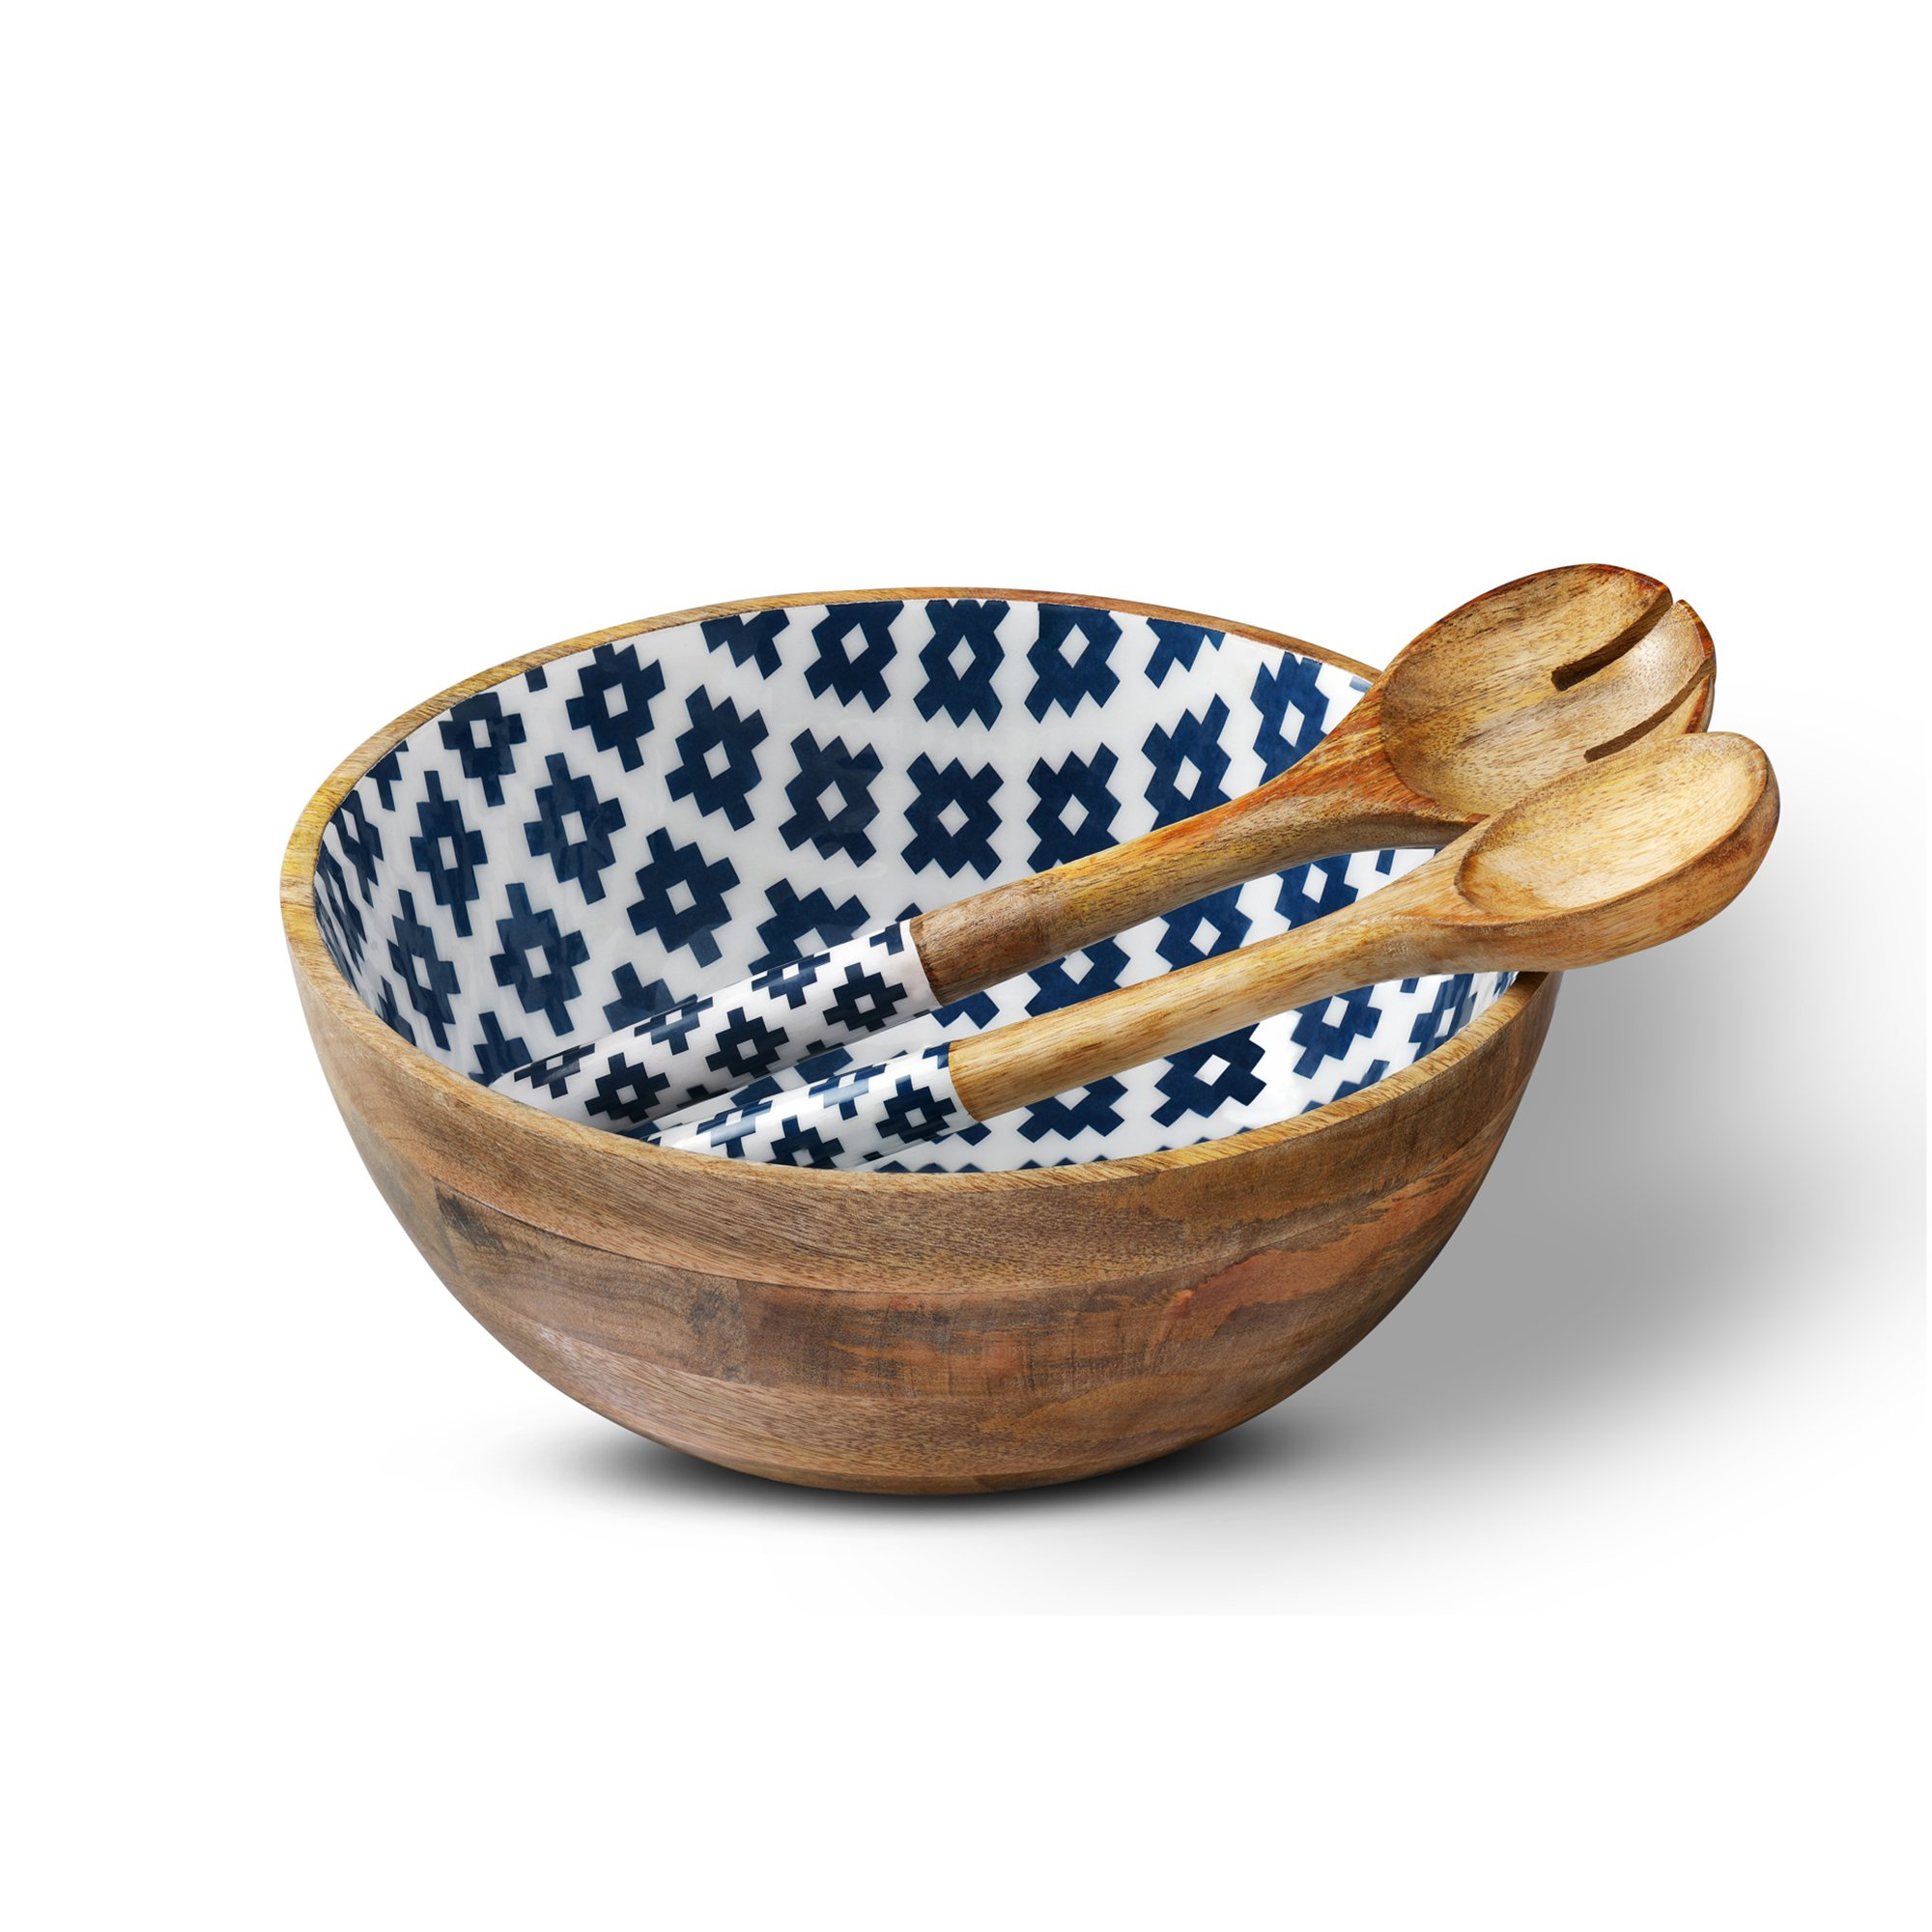 Wooden Salad Bowl Colorful Serving Bowls with 2 Servers, Mango Wood Large Mixing Container Set with Tongs for Fruits, Pasta, Cereal and Vegetable - 12'' Diameter x 5'' Height, Geometric Design